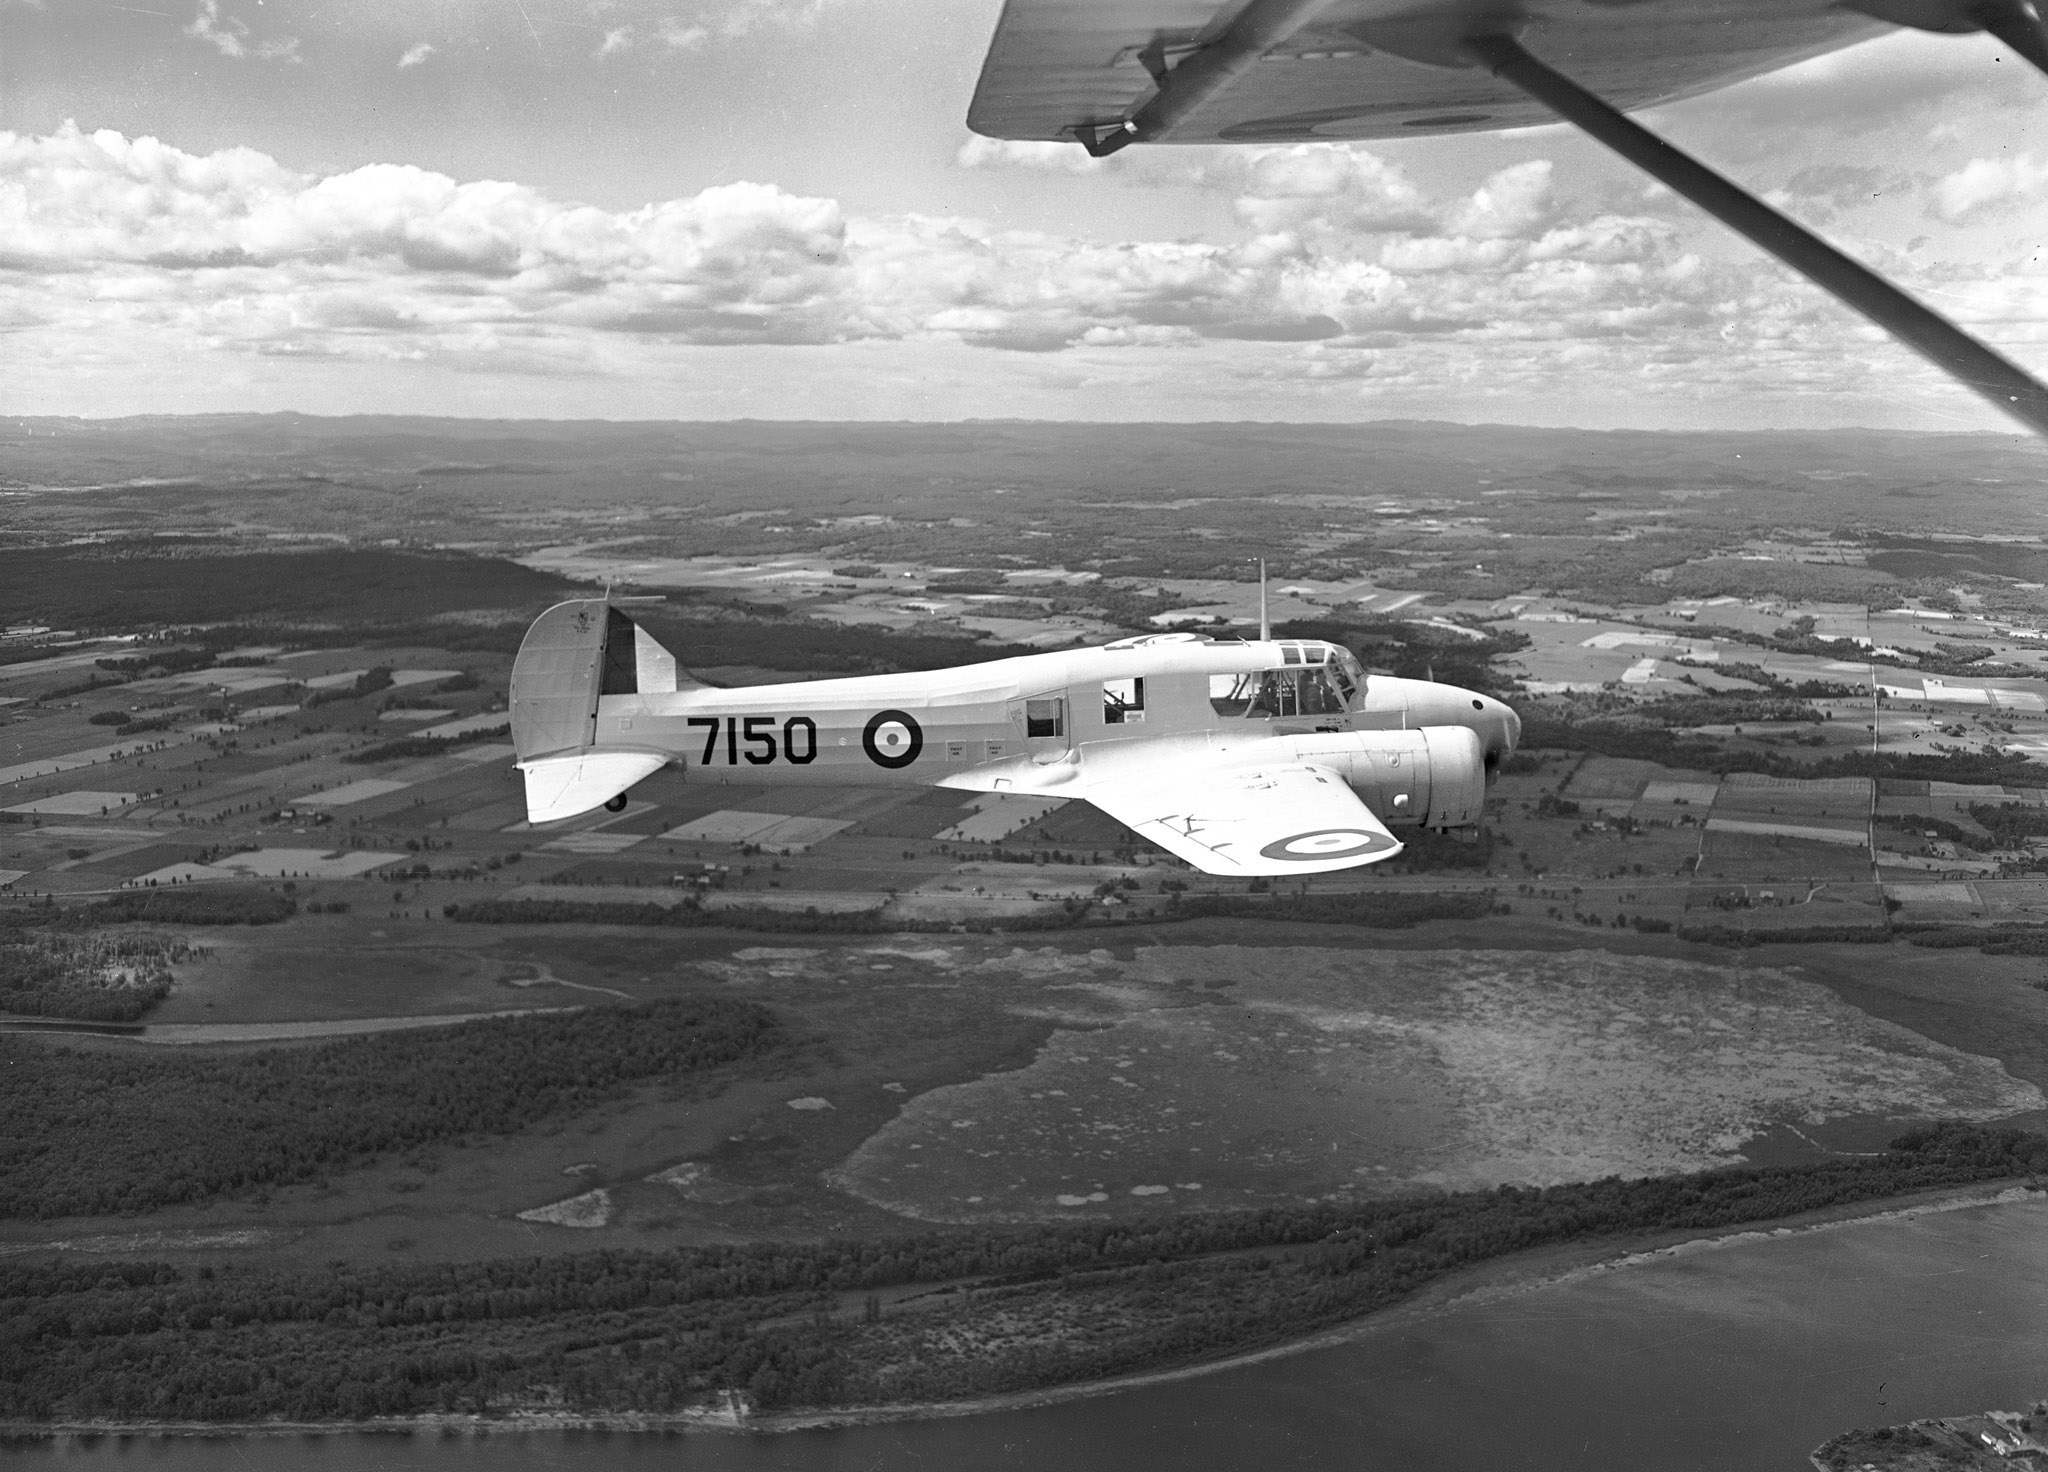 Three Royal Air Force airmen and a Royal Canadian Air Force airman were lost on October 30, 1942, when their Avro Anson, similar to the Avro Anson Mark II shown in this August 1942 file photo, crashed in Southern Vancouver Island, British Columbia. PHOTO: DND